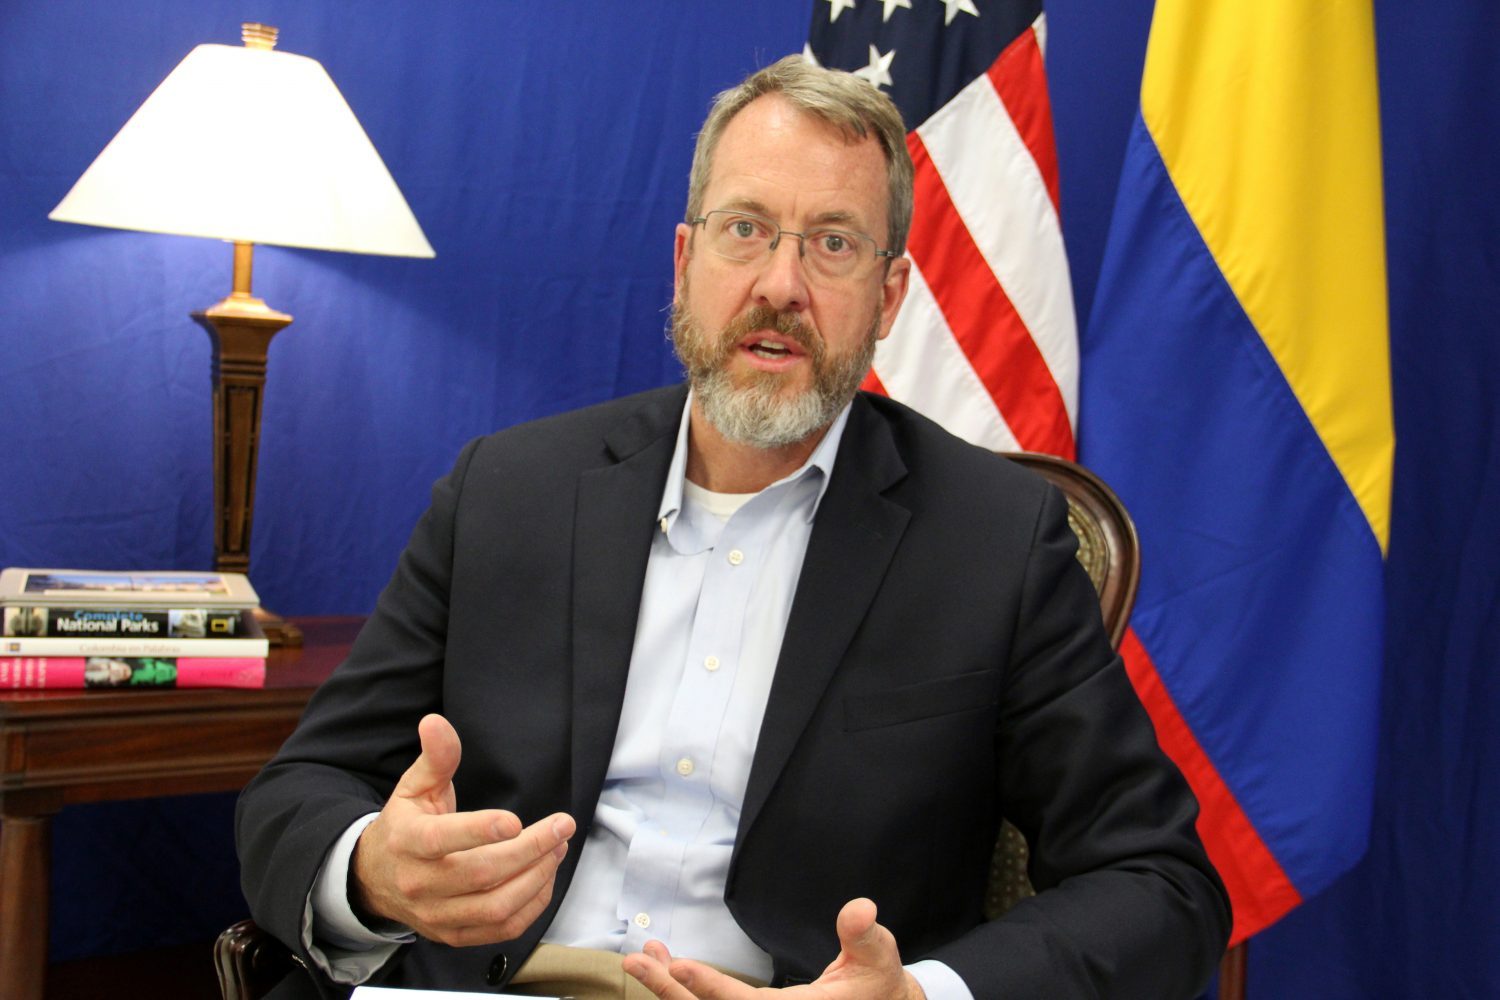 FILE PHOTO: U.S. Charge d'Affaires for Venezuela James Story, speaks during an interview with Reuters in Bogota, Colombia April 12, 2019. Picture taken April 12, 2019. REUTERS/Julia Symmes Cobb